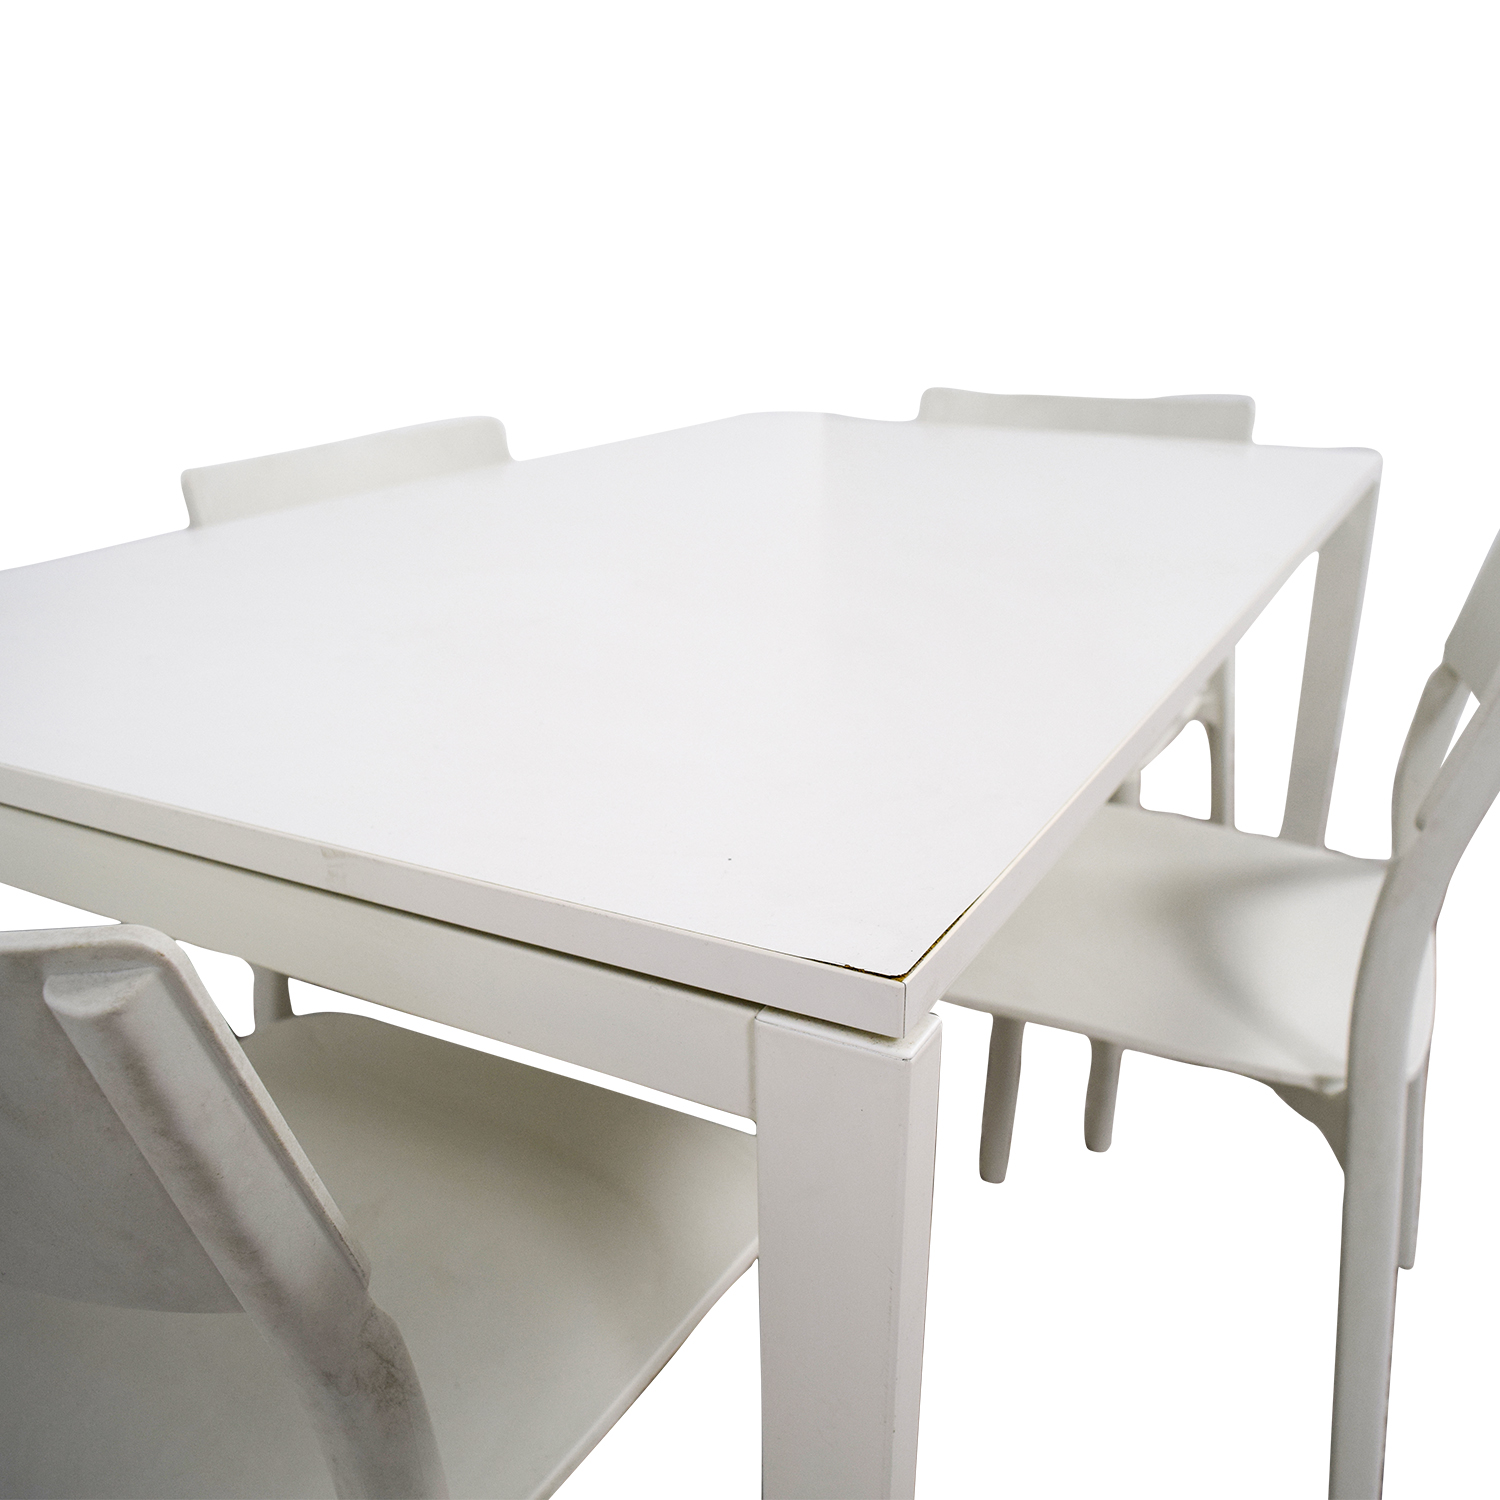 Ikea Kitchen Table: IKEA IKEA White Kitchen Table And Chairs / Tables